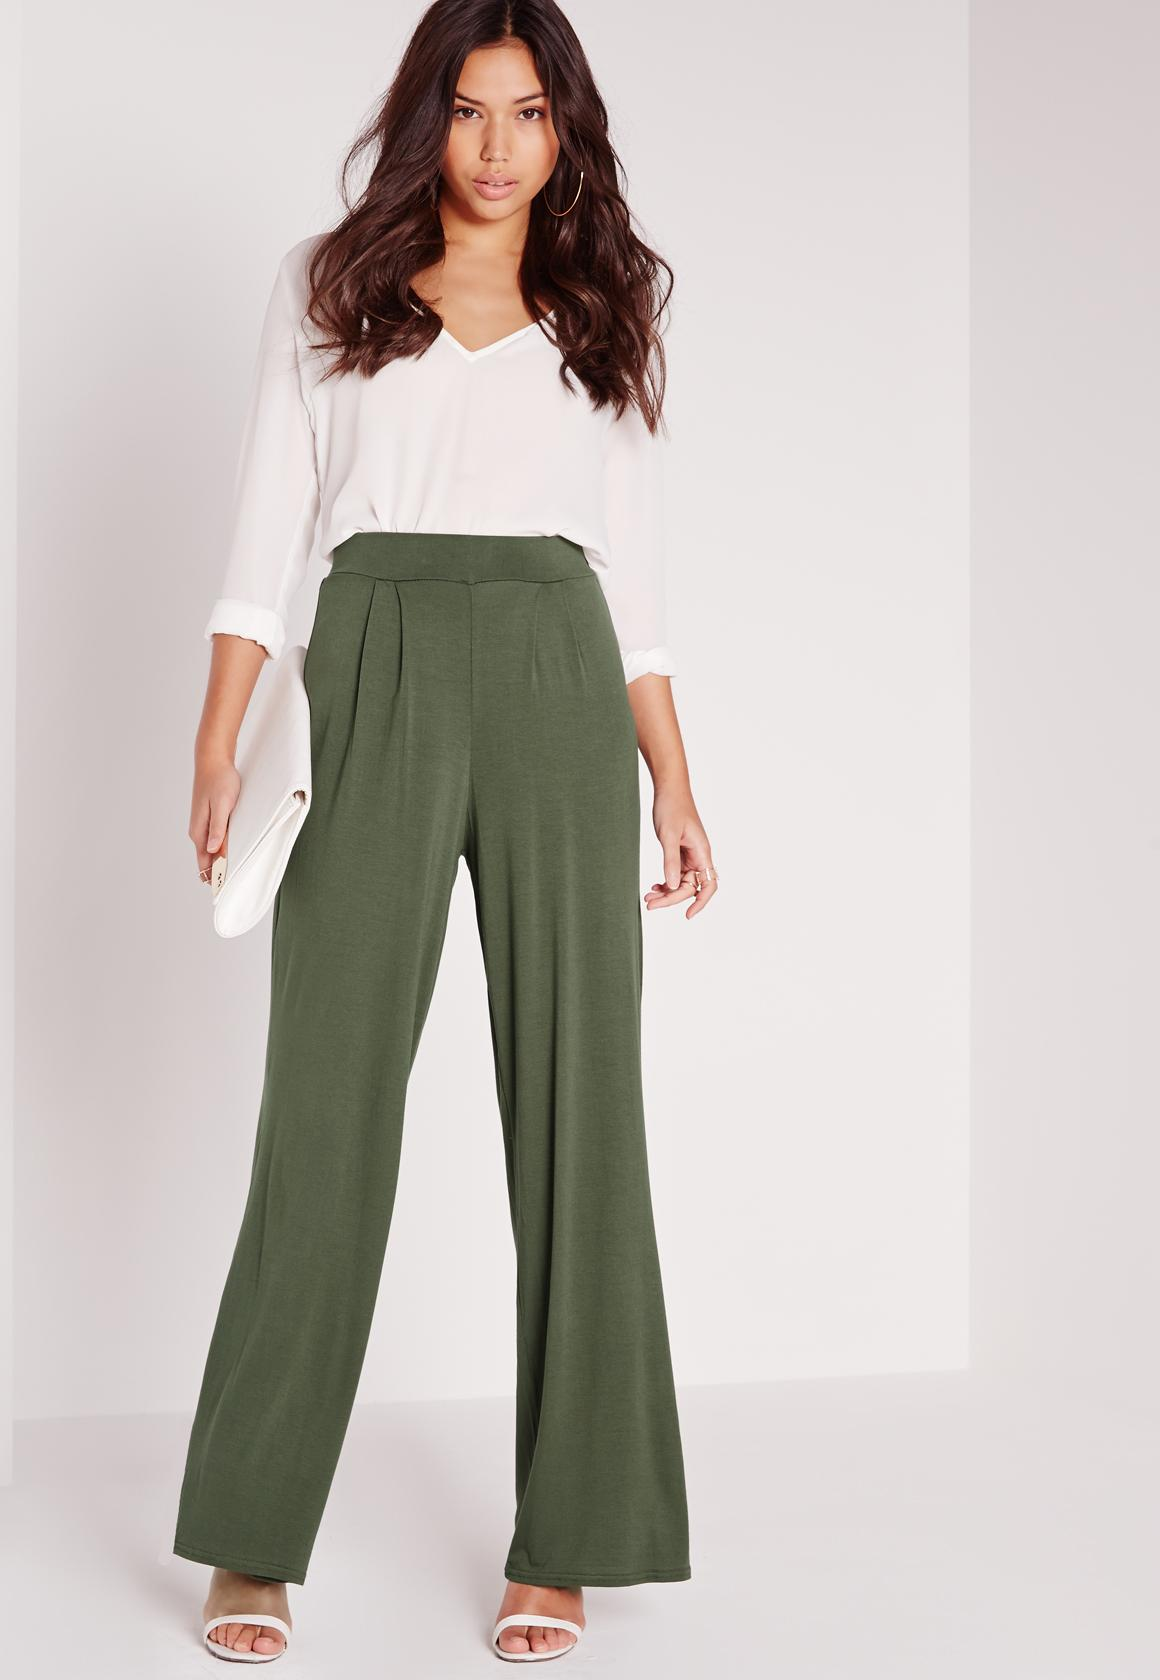 Image result for wide leg trousers